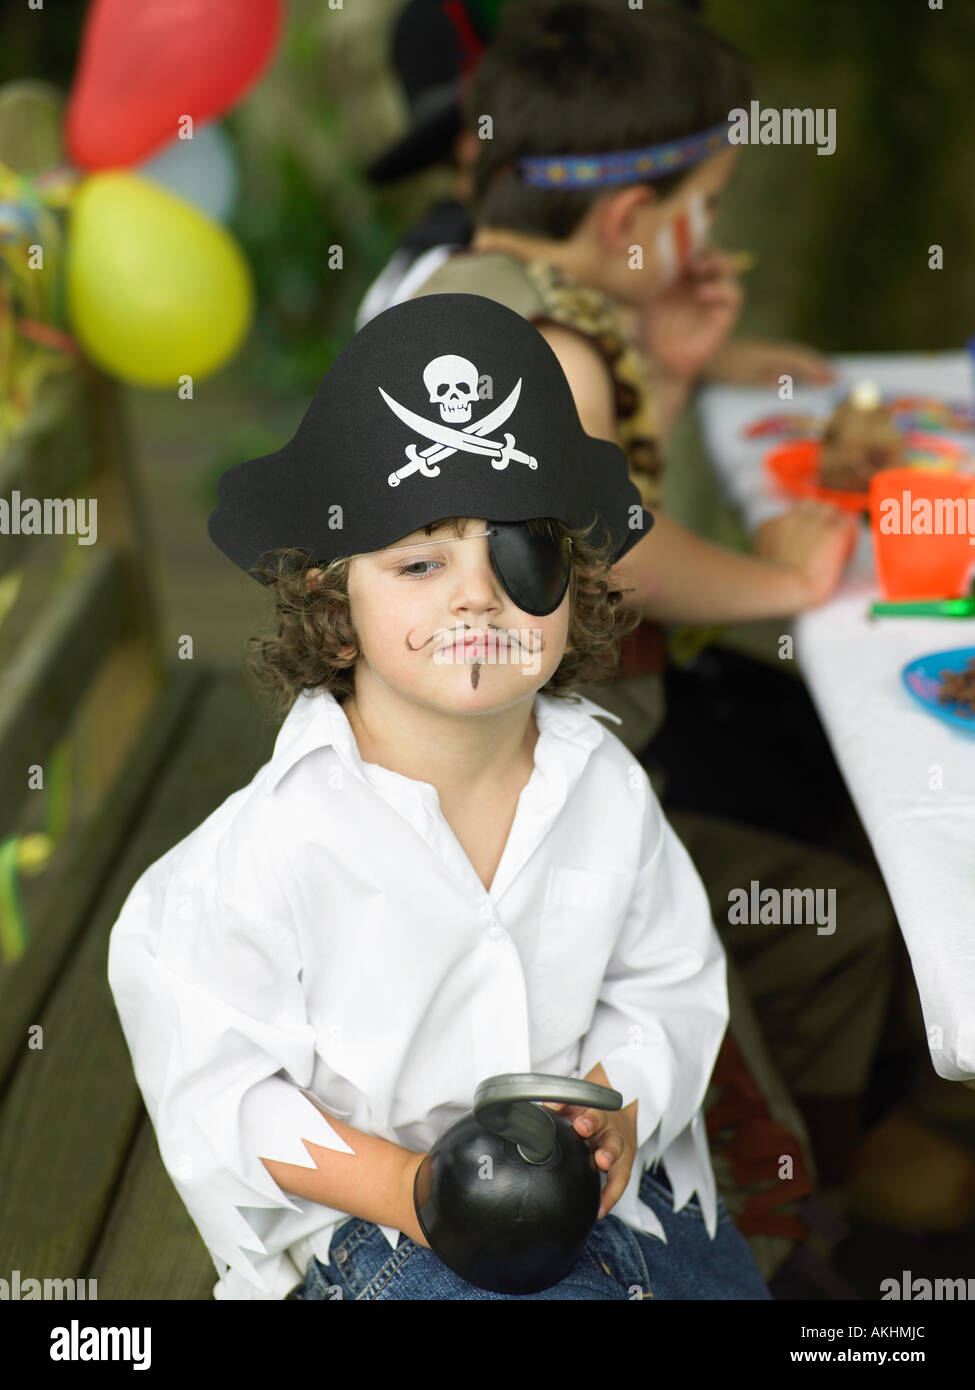 Boy in a pirate outfit - Stock Image